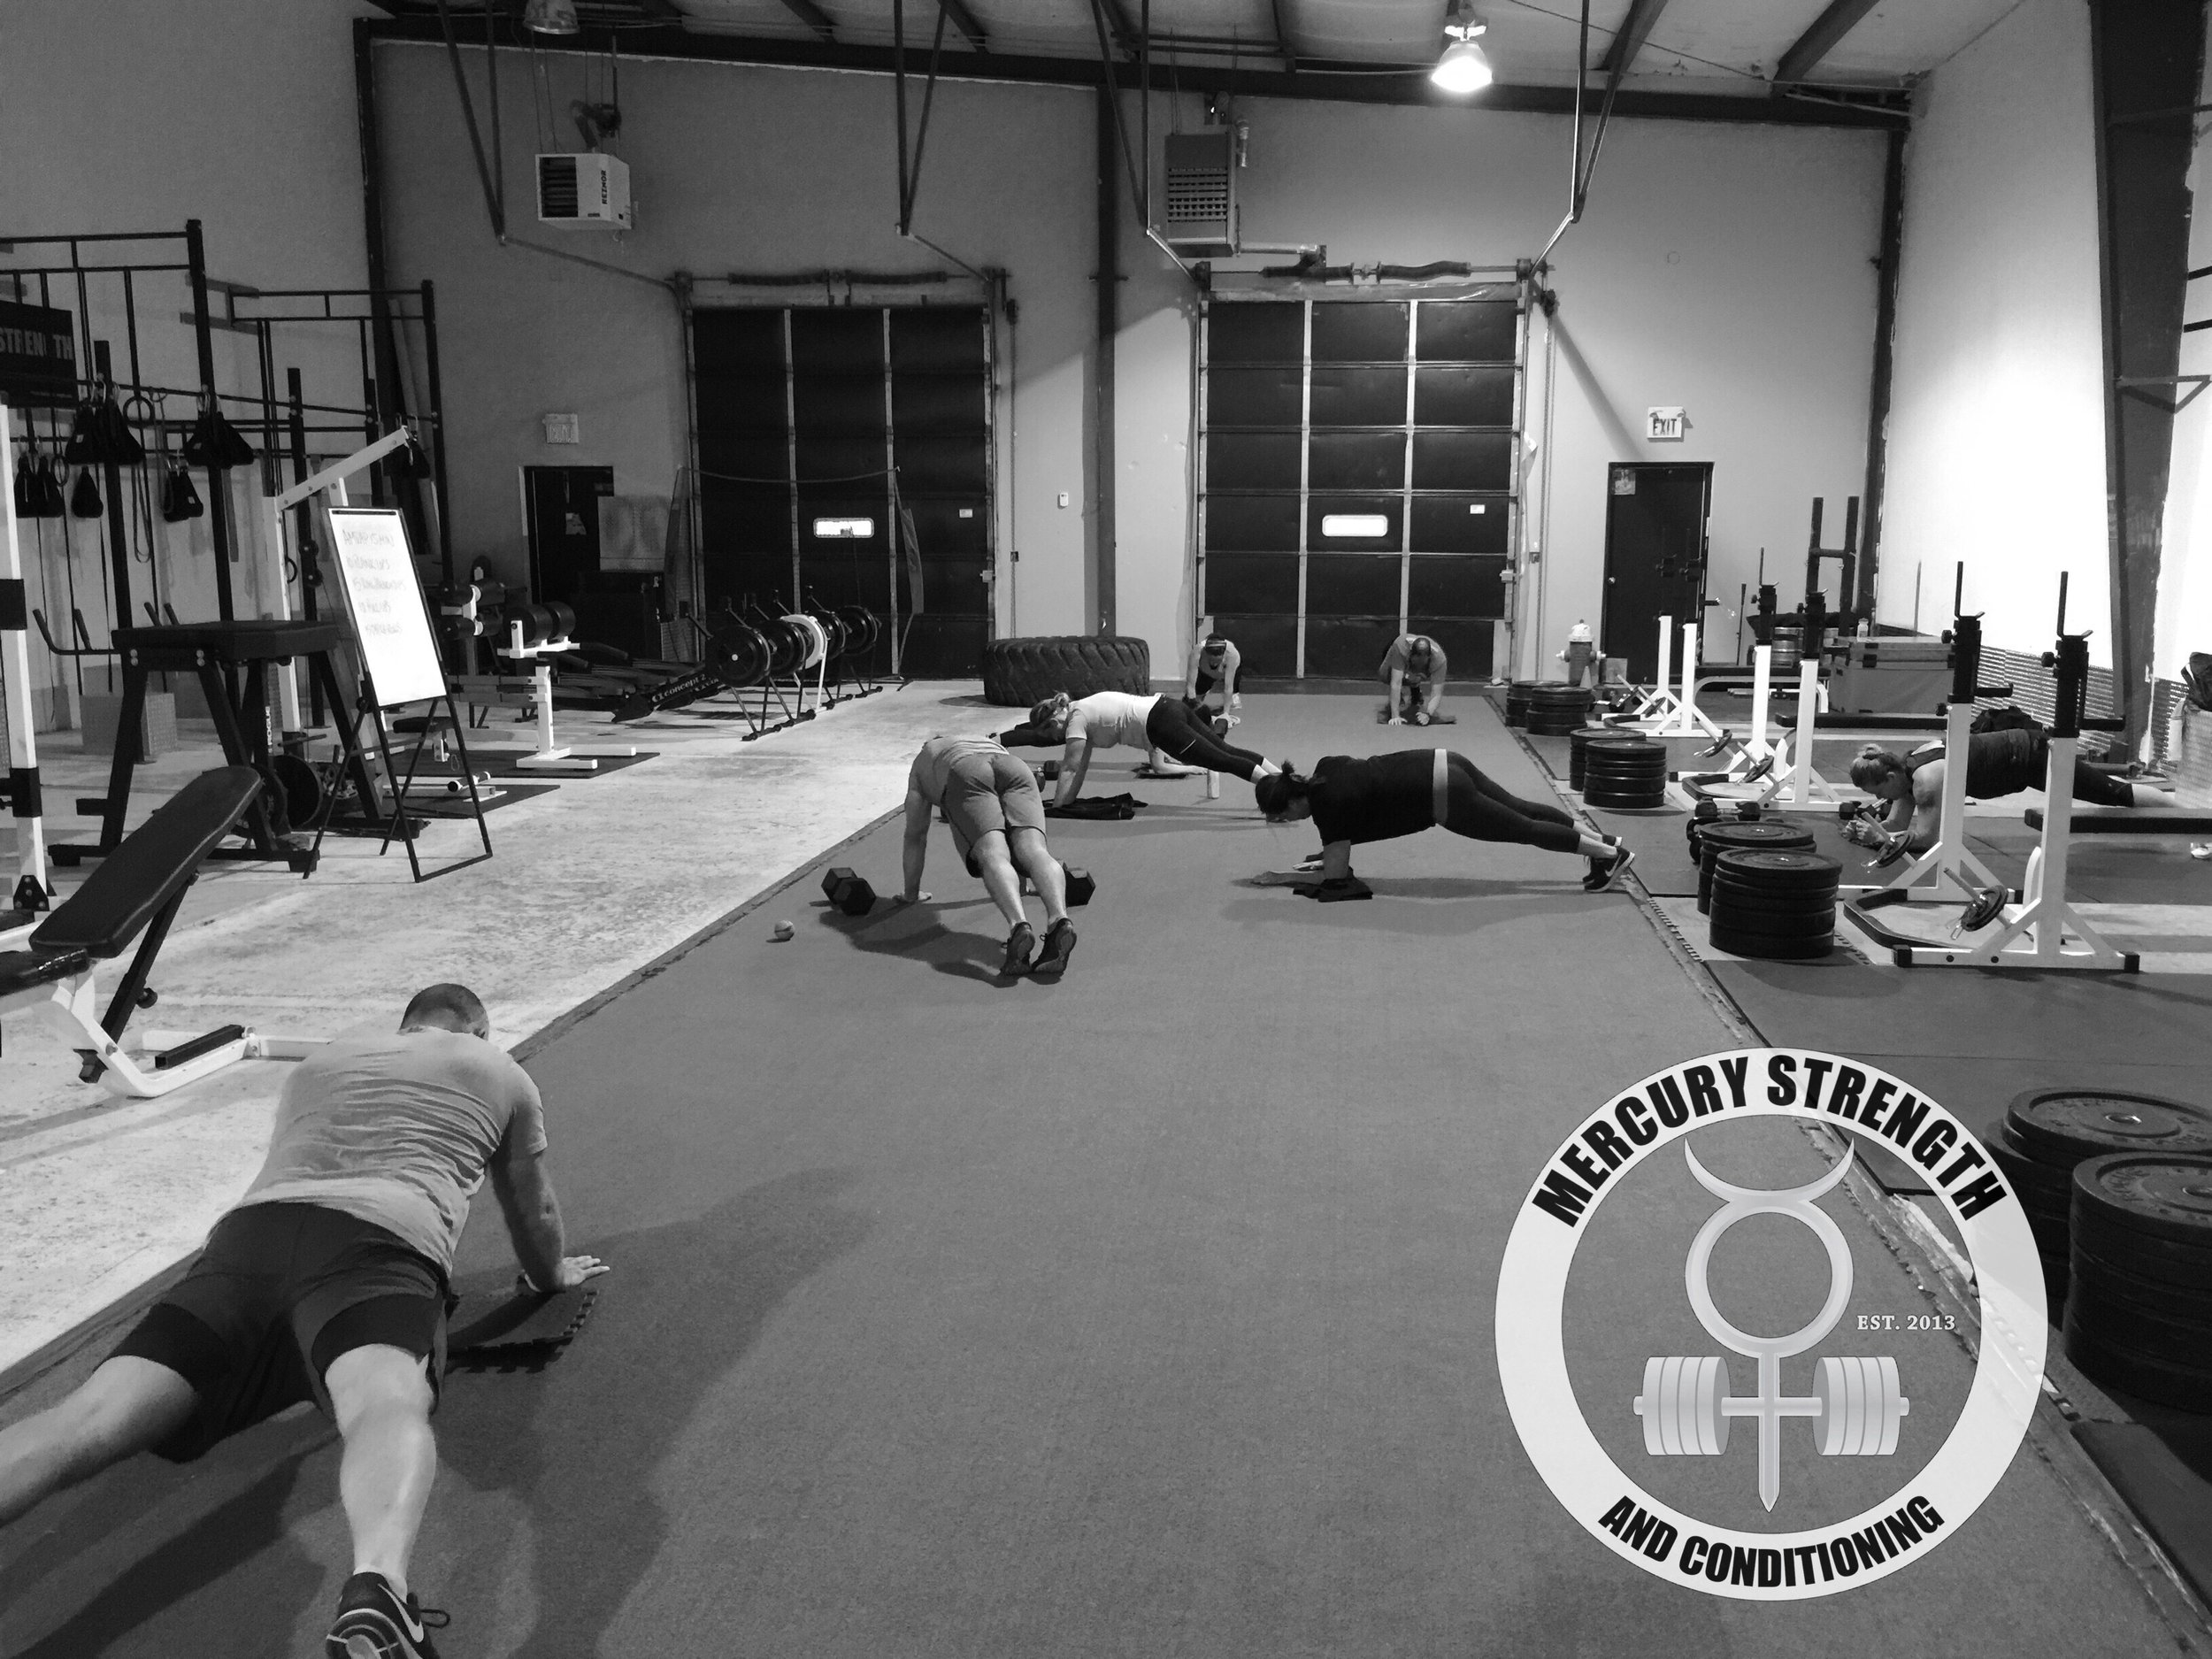 A busy 0630 starting a new training cycle with some plank ups